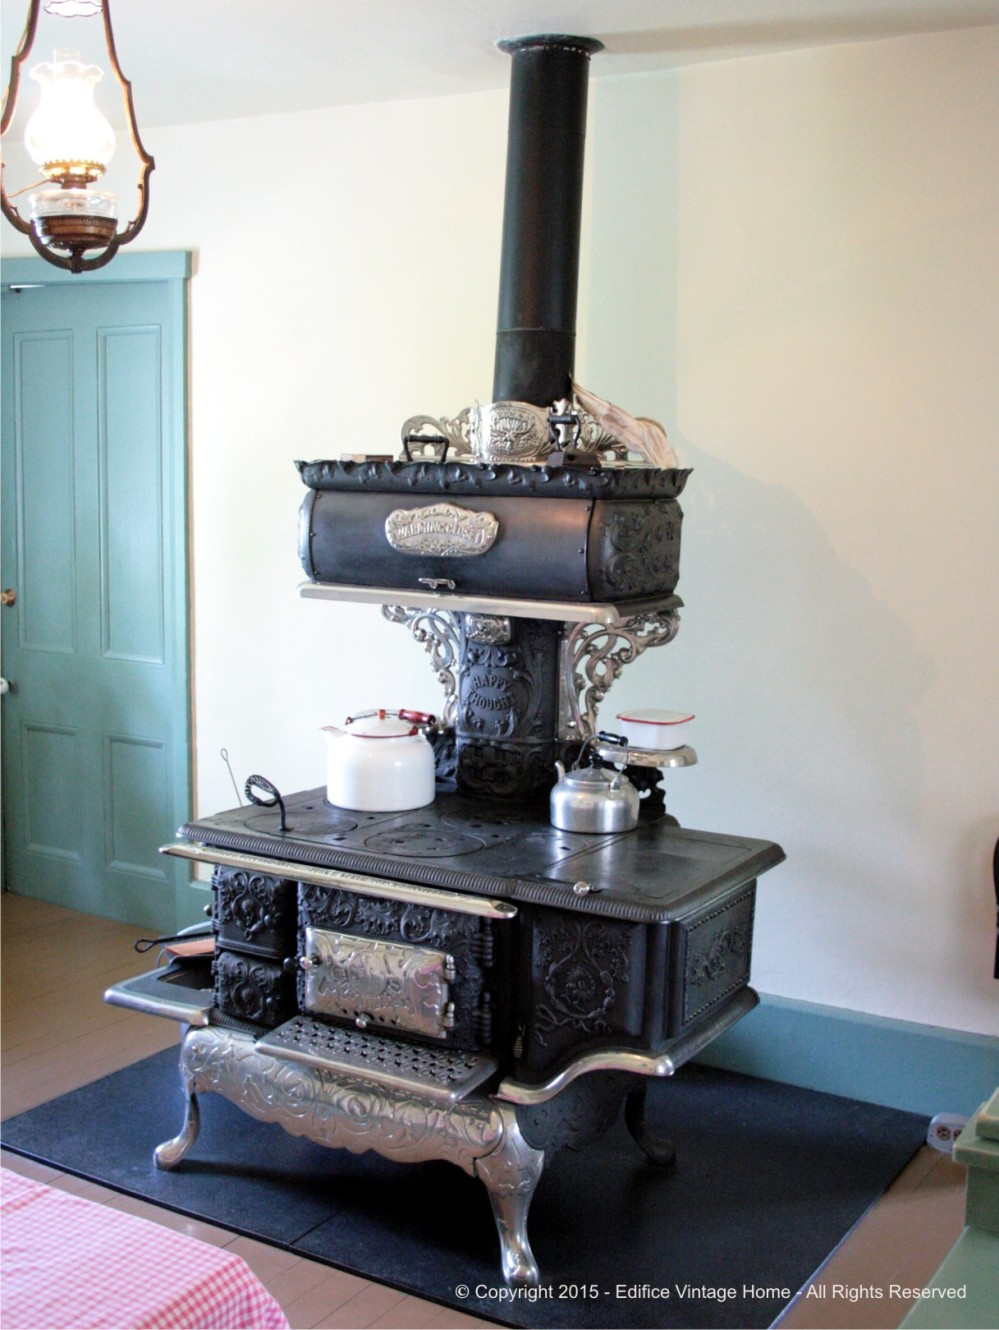 Antique Stoves Copyright 2015 Edifice 14